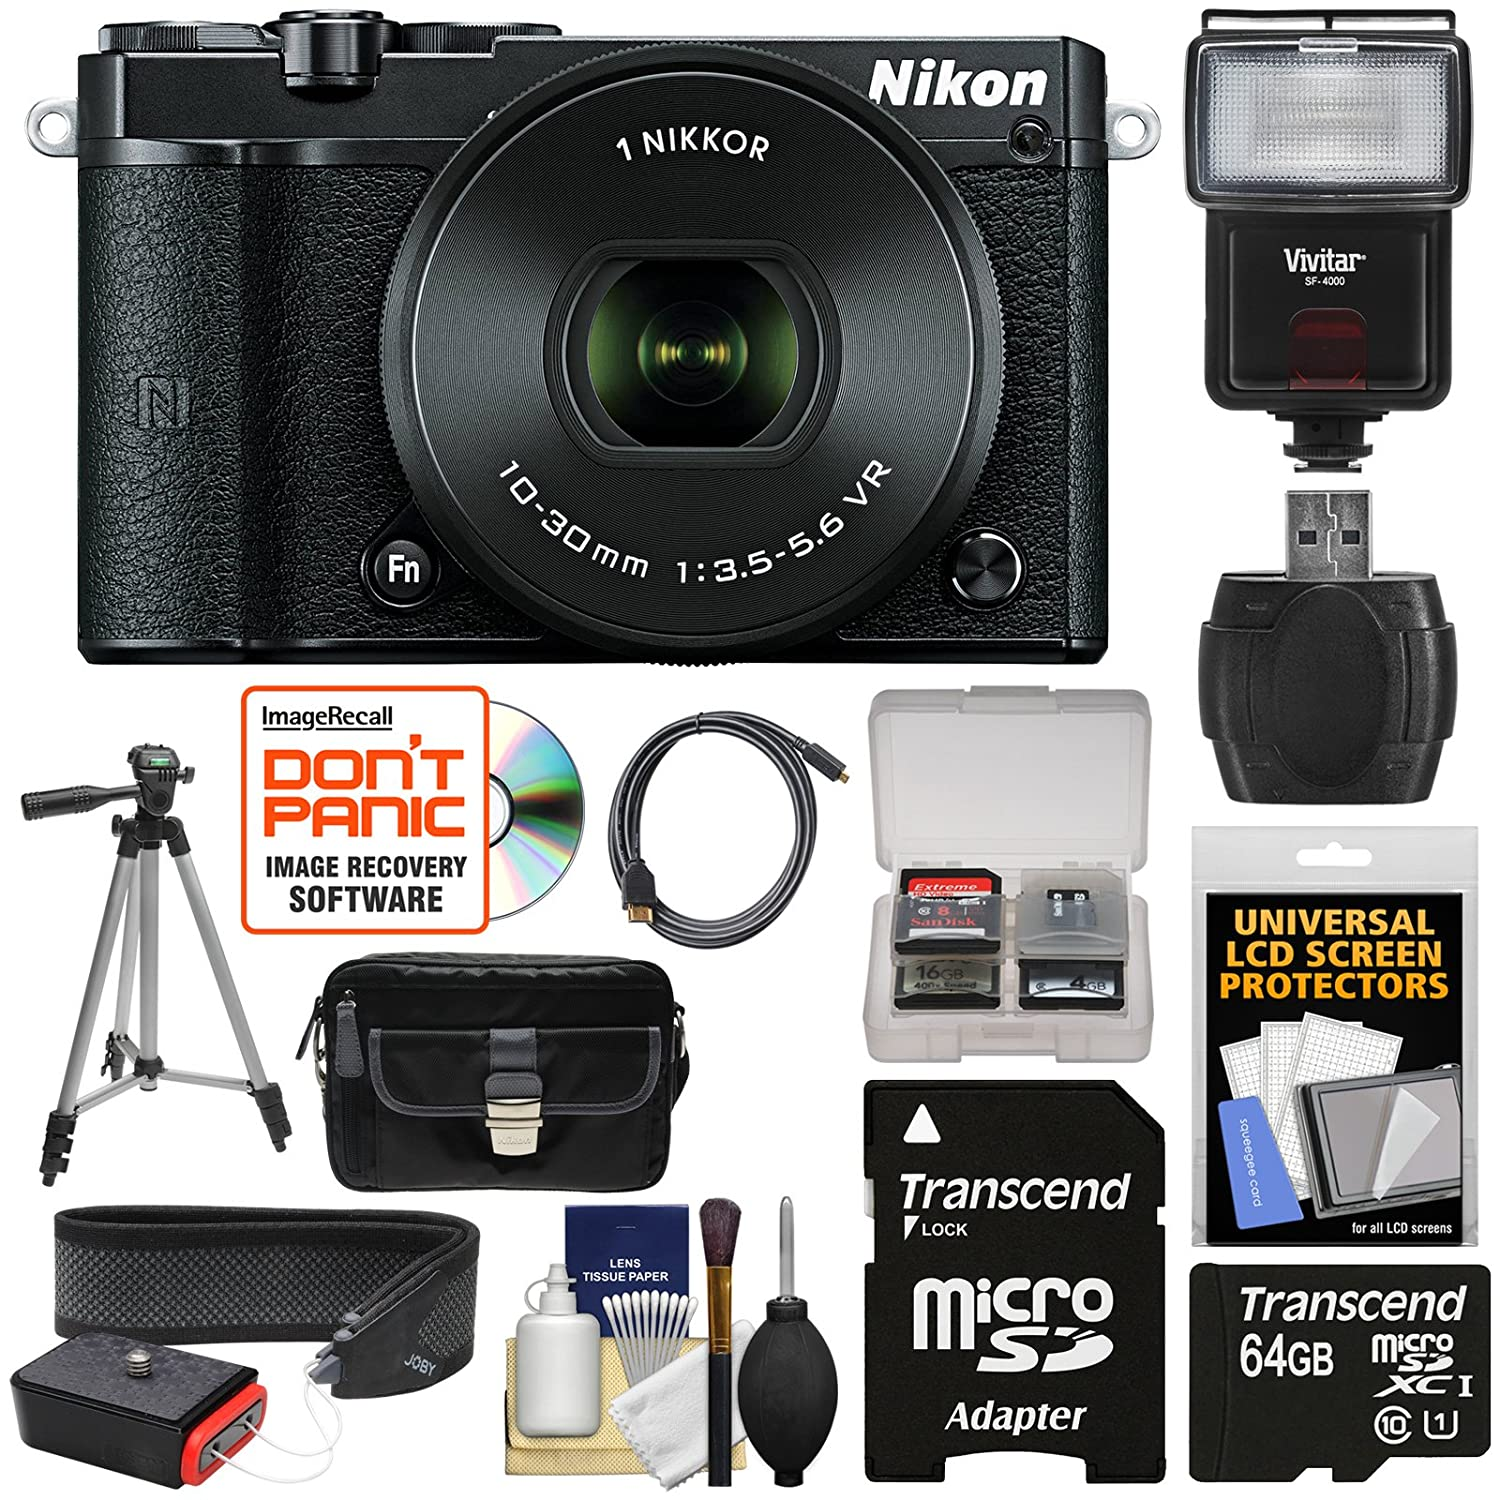 Nikon 1 J5 Wi-Fi Digital Camera & 10-30mm Lens (Black) with 64GB Card + Sling Strap + Case + Tripod + Flash + Kit